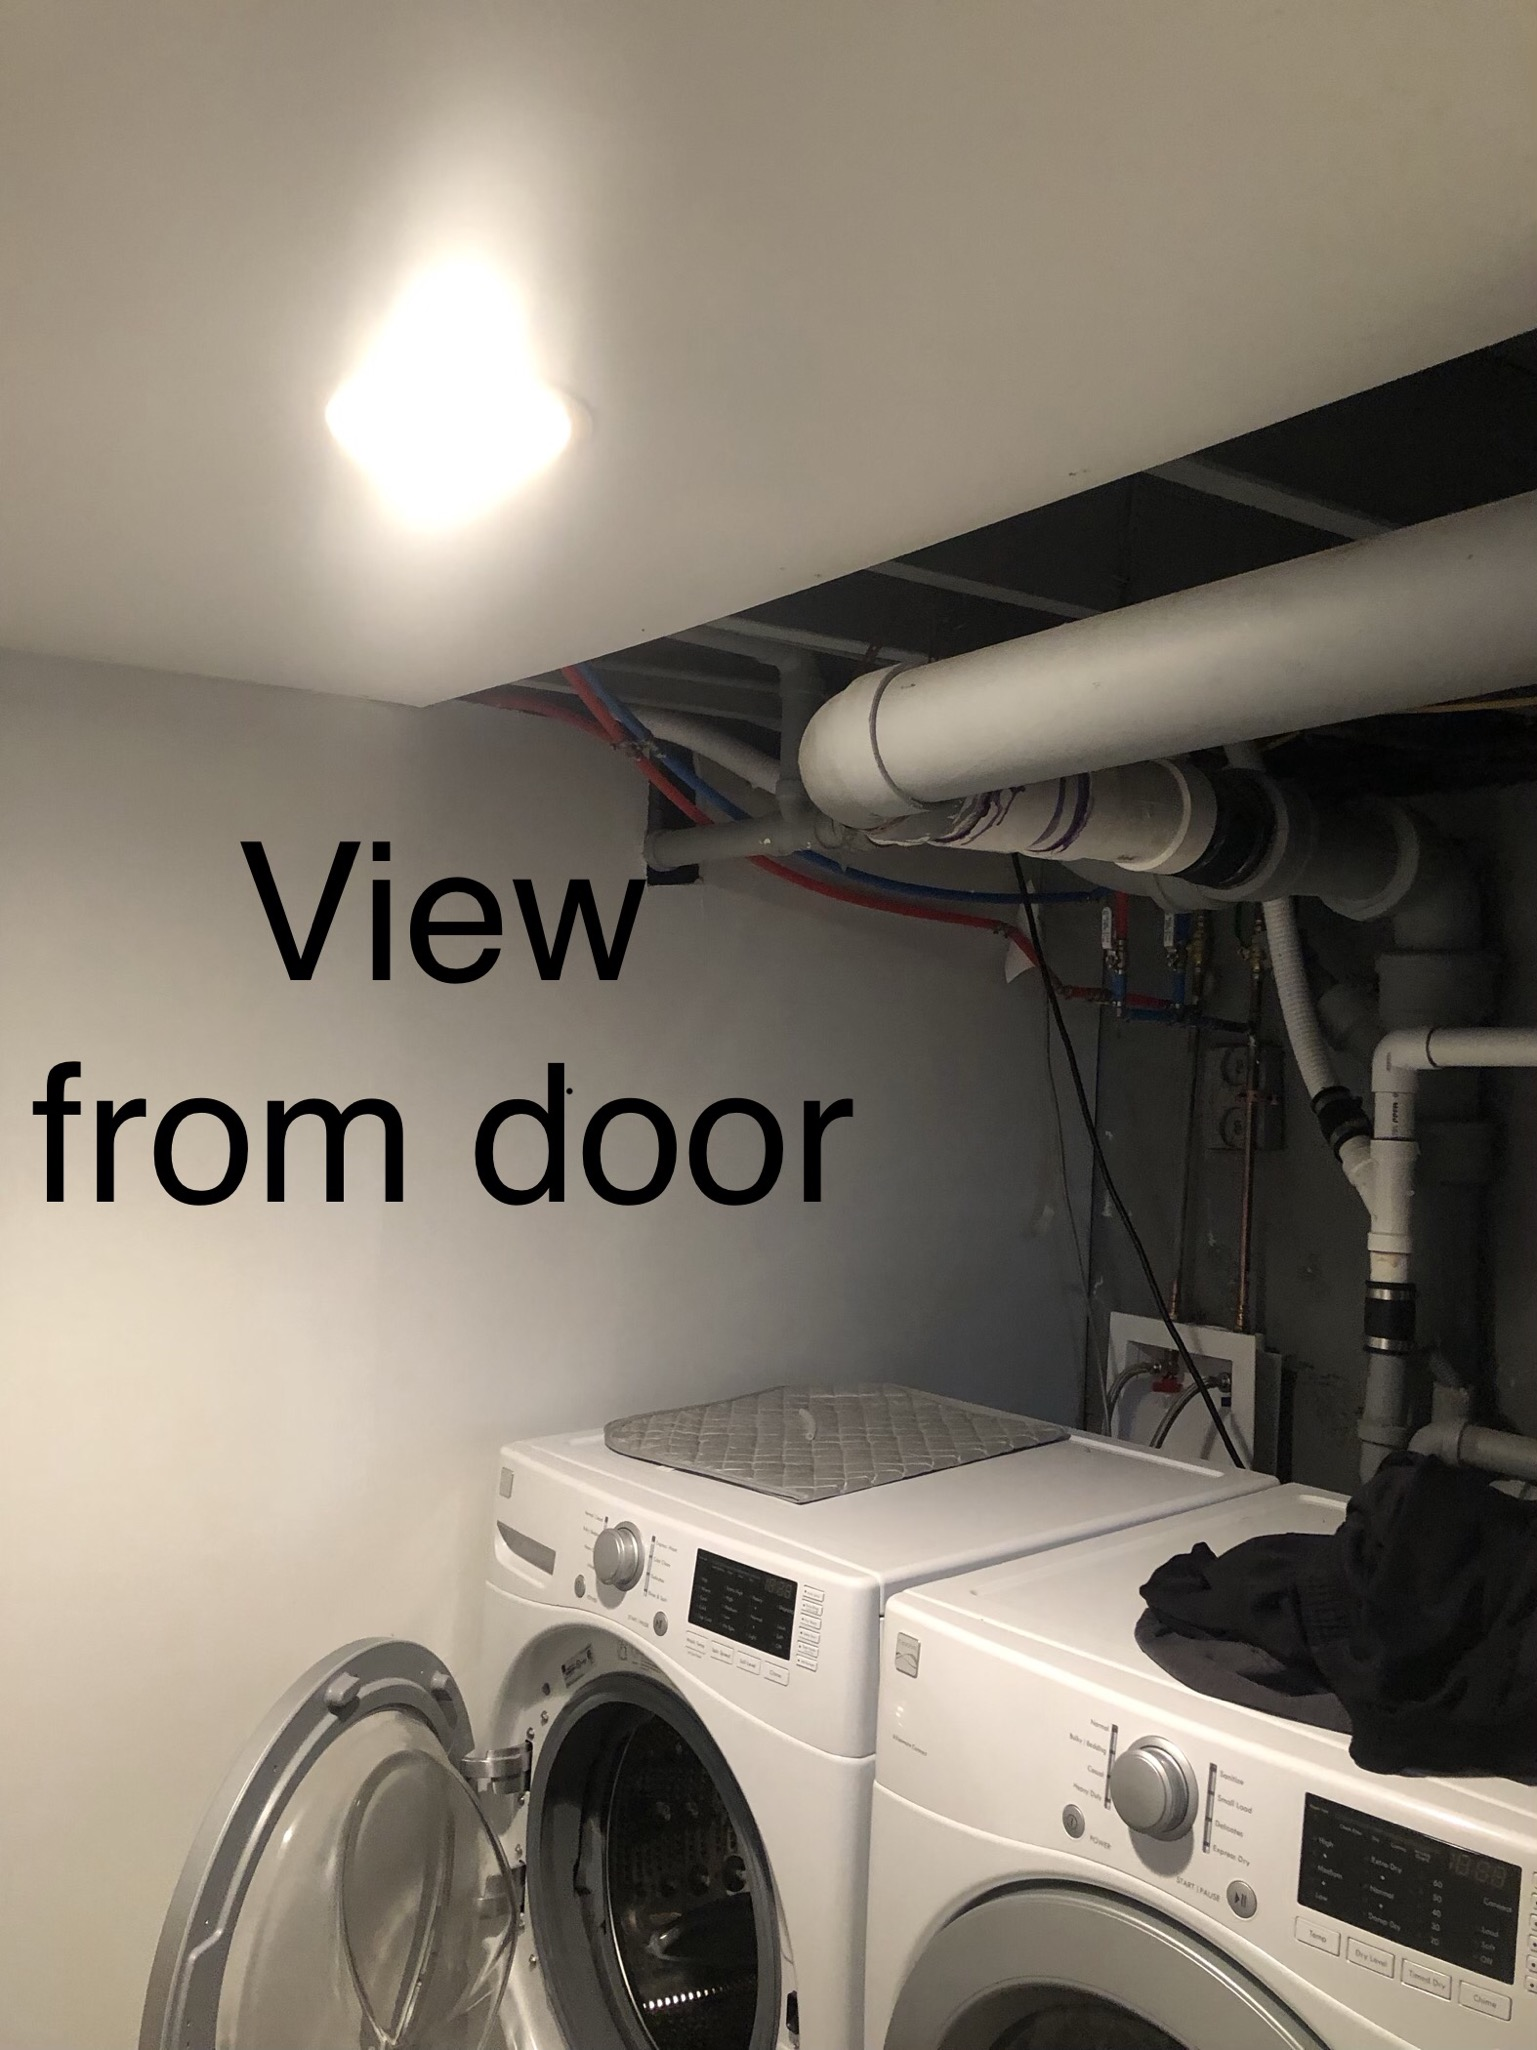 How to insulate laundry room-dacb3e00-a5a1-419b-a91d-7e9d11b3f292_1548611204019.jpeg